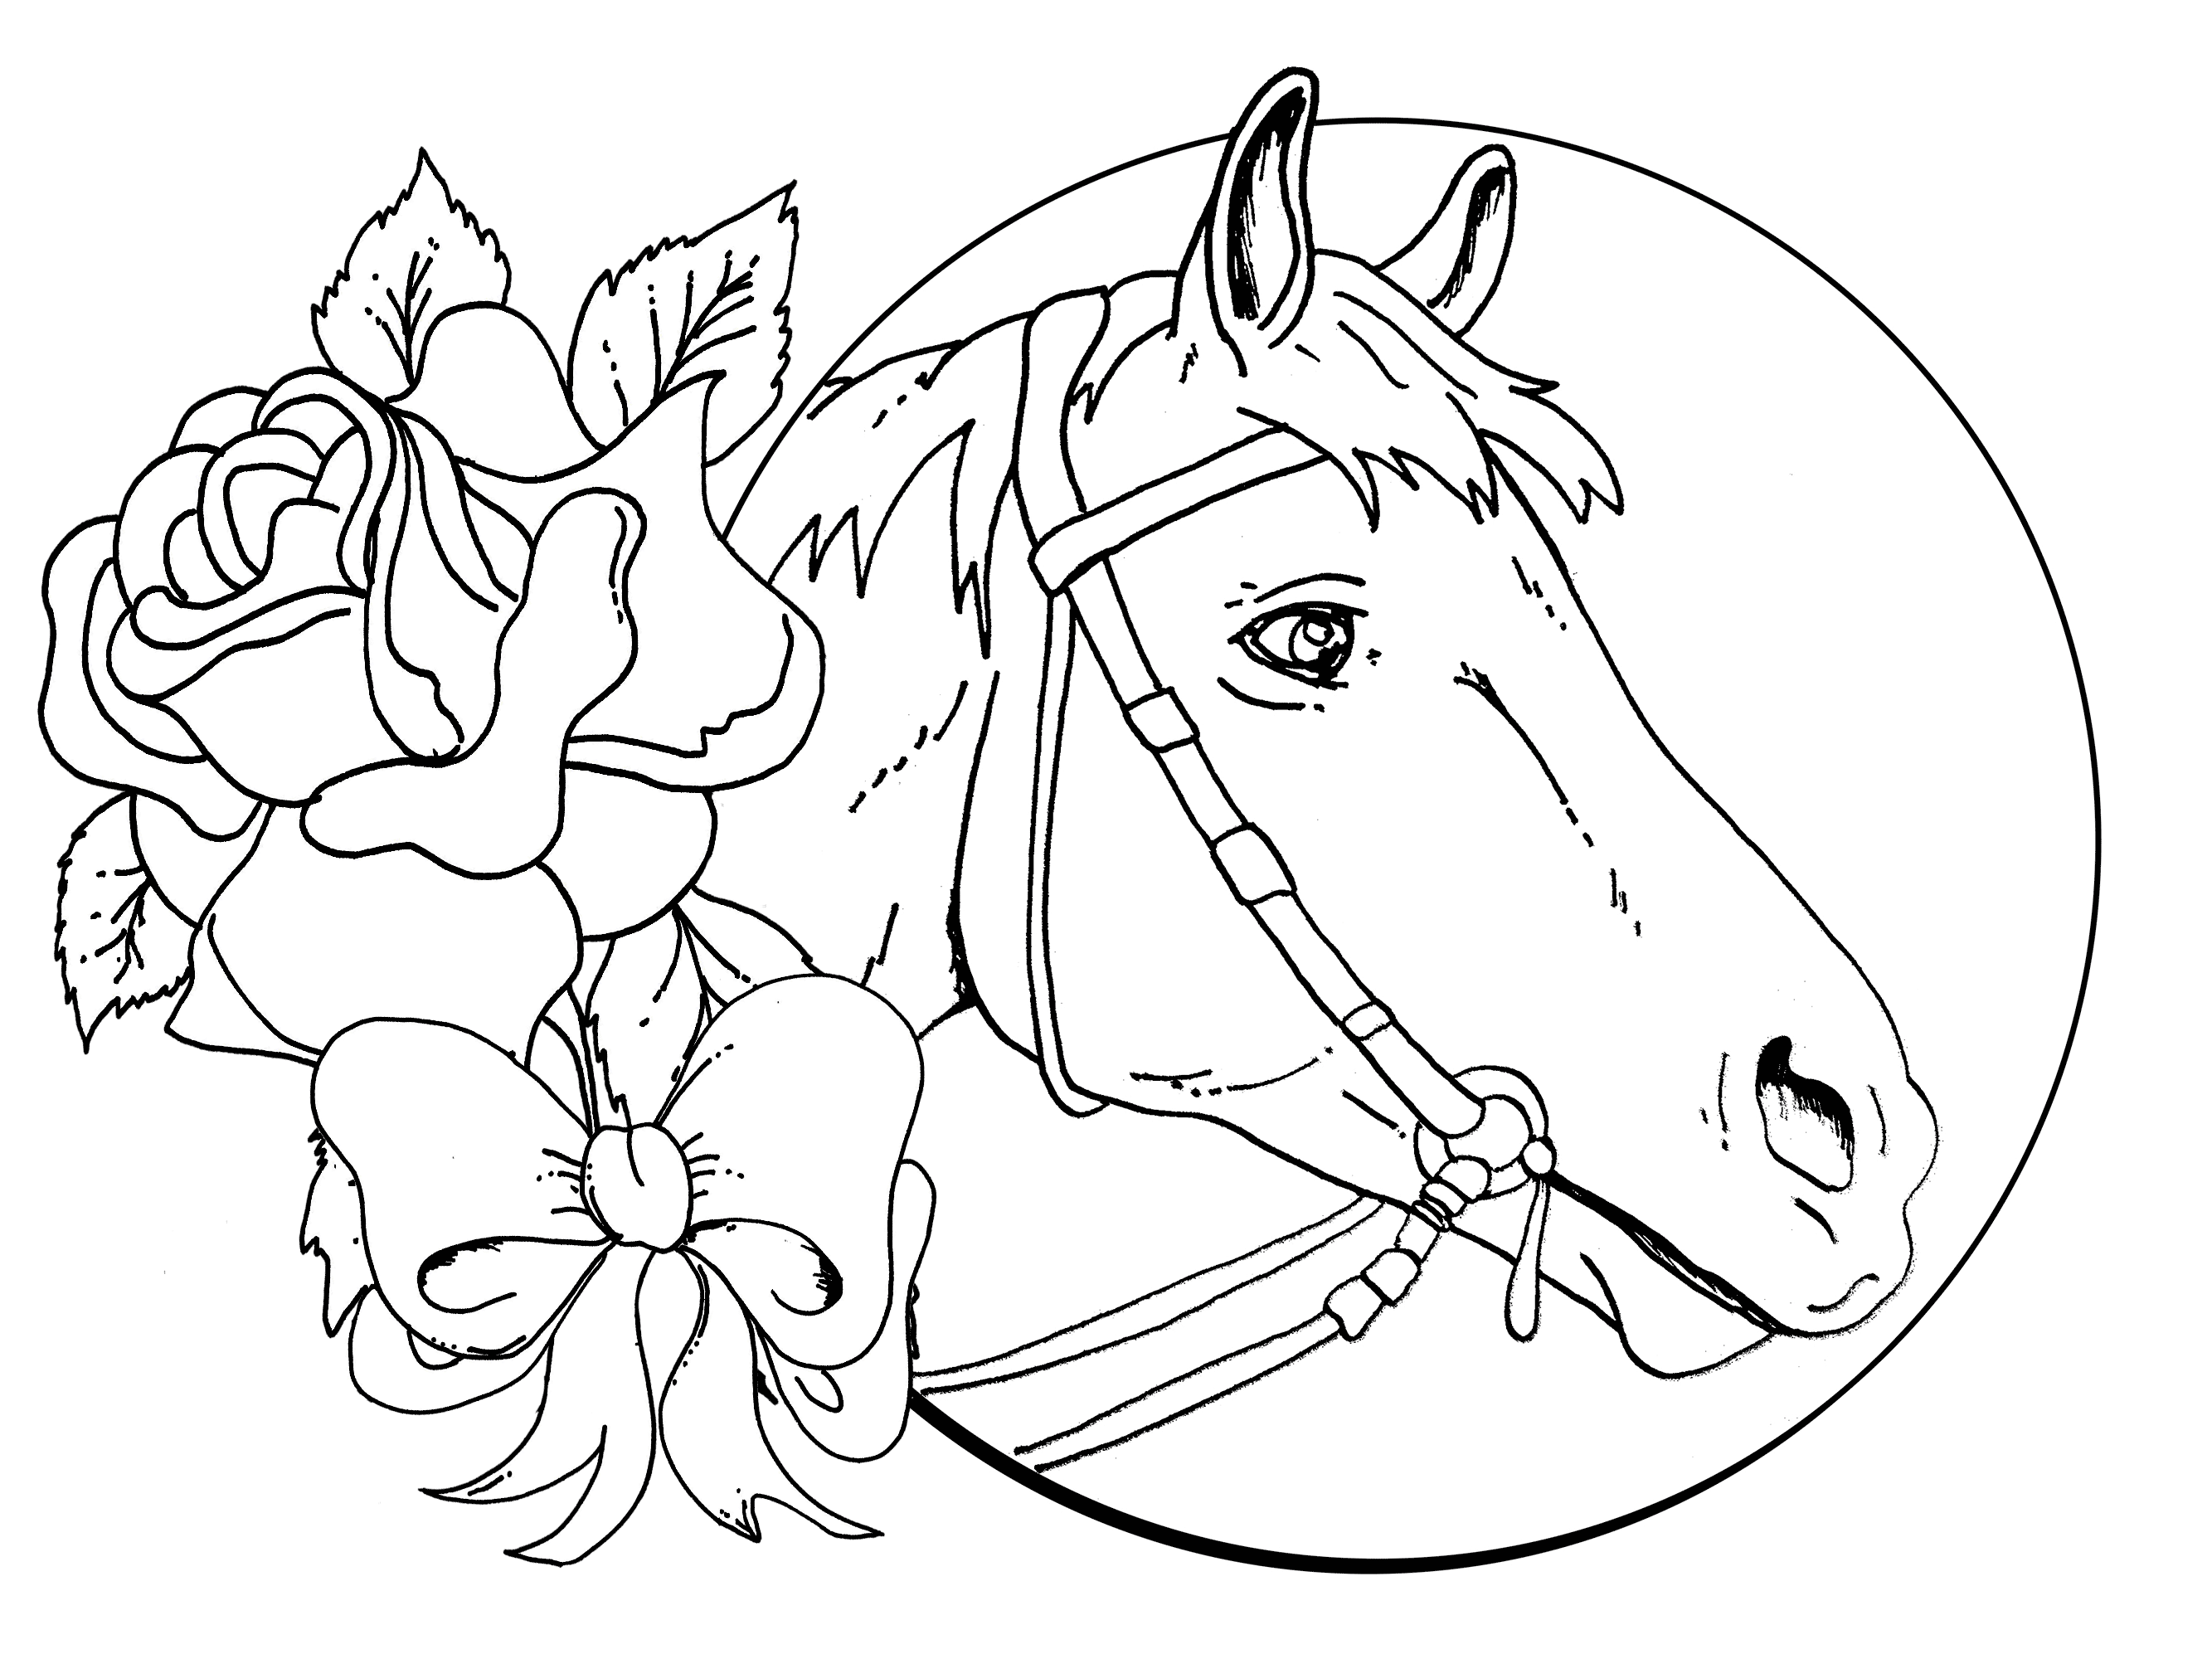 Coloring Horse Coloring Pages For Girls And Free Printable Horse Coloring  Pages For Kids Best Of To Col Horse Coloring Pages For Girls